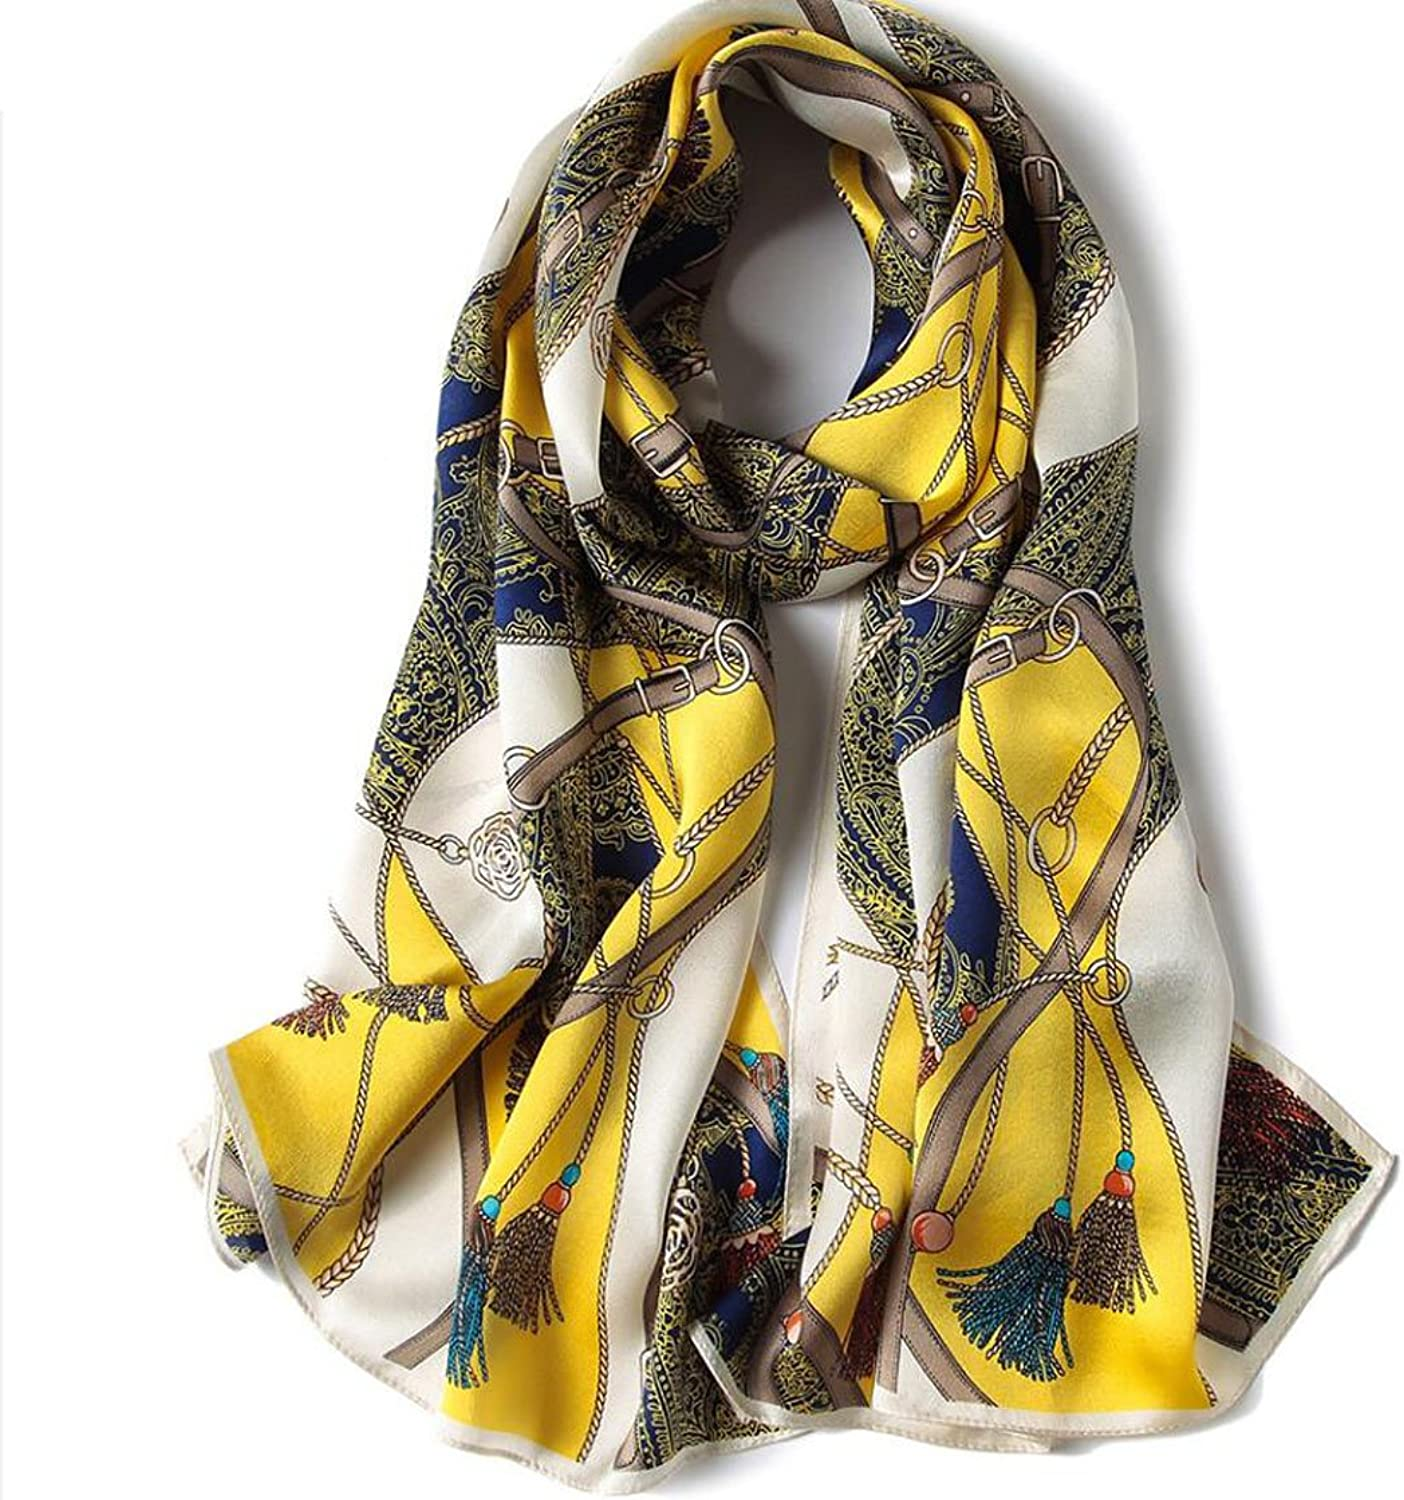 GAO Silk Scarf Printing Embroidery Embroidered Silk Scarf Women 100% Silk Four Seasons Long Style Wild Sunscreen Shawls Beach Towels (Length  170  53cm, Packing of 1) (color   I)